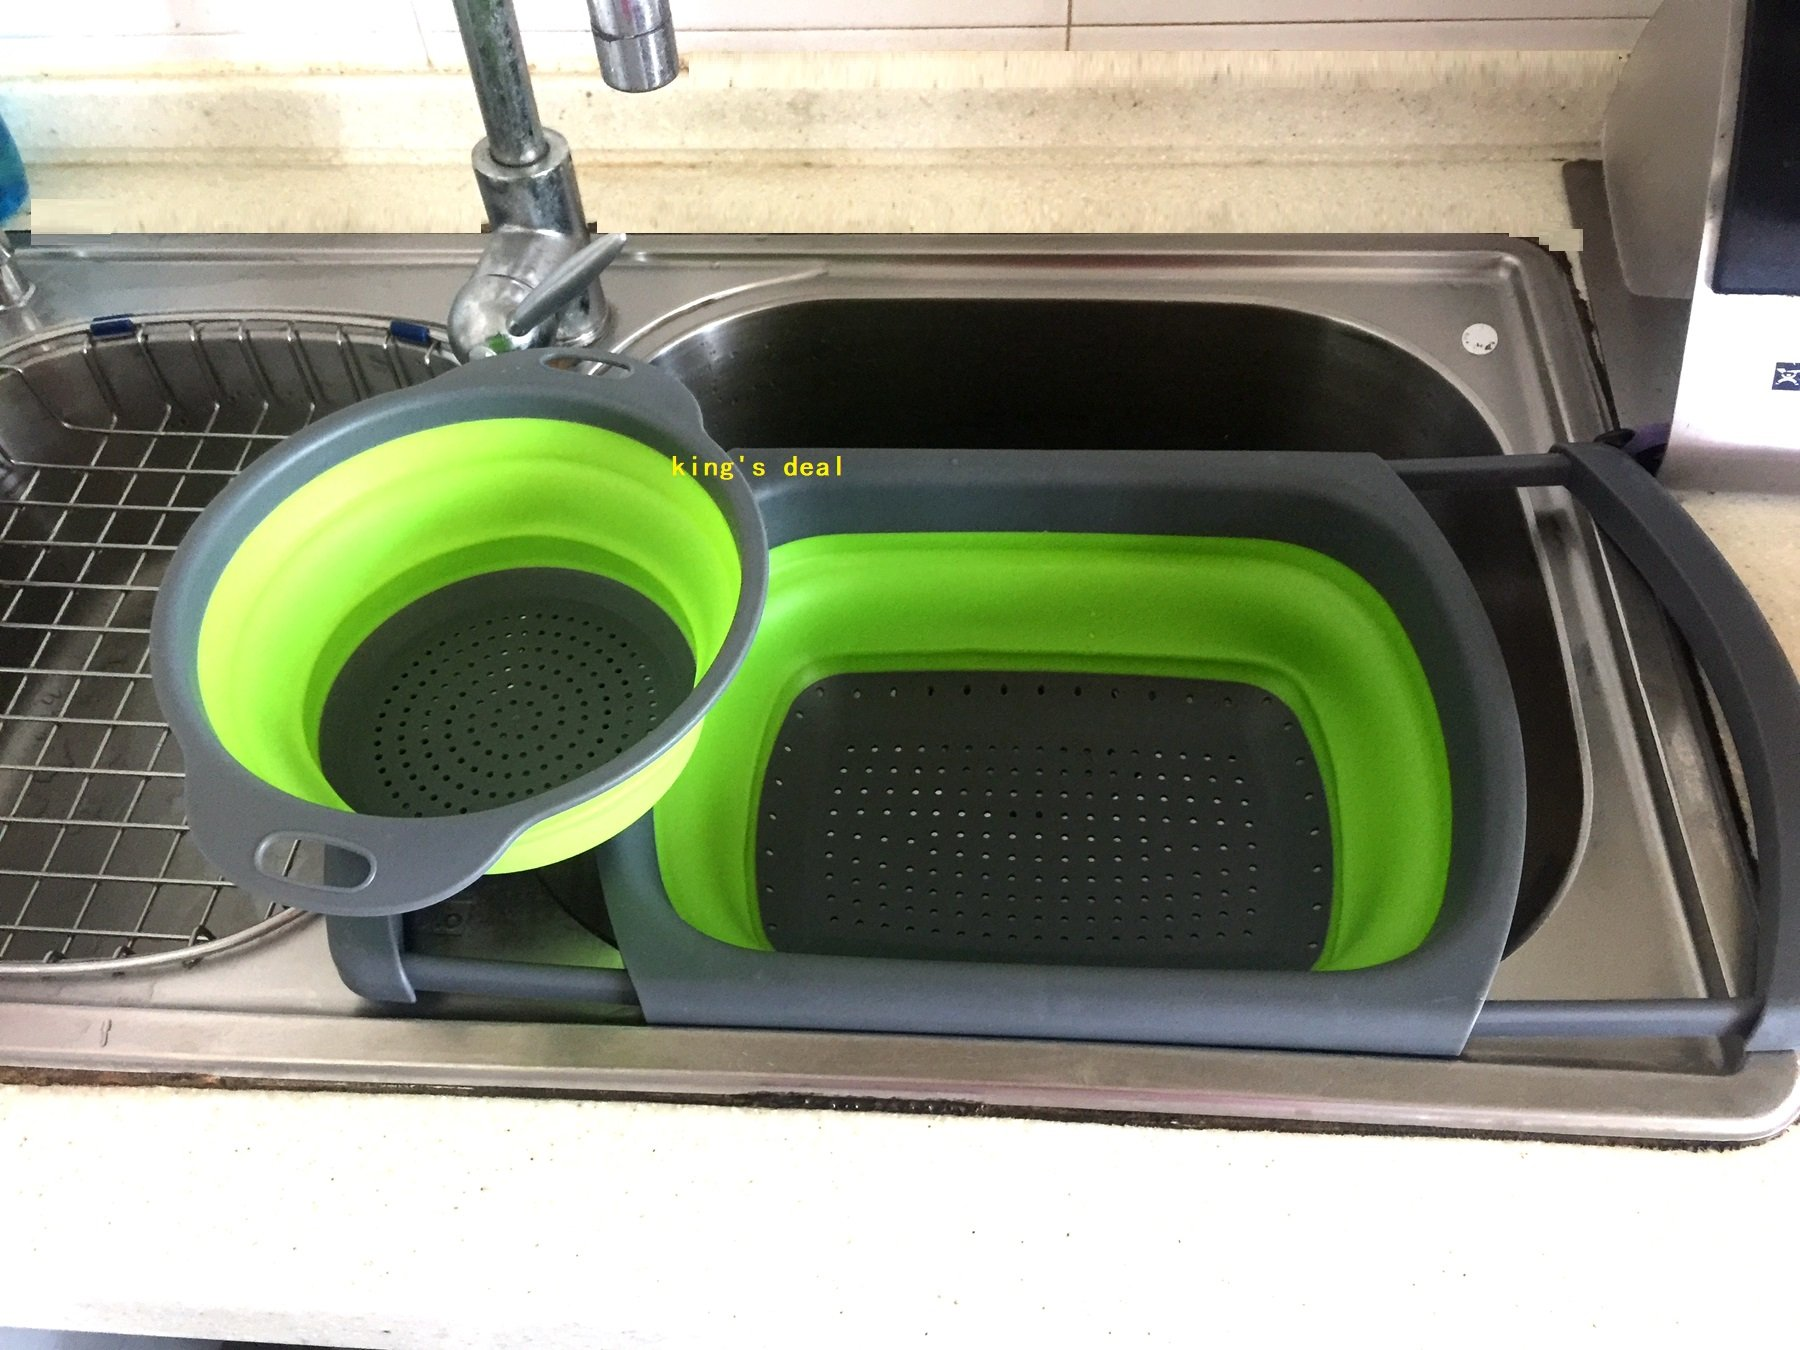 king's deal 2 Pcs Collapsible Colander, Over The Sink Strainer With Steady Base For Standing, 6-quart Capacity and 2 Quart Folding Strainers, Dishwasher-Safe,BPA Free(6qt+2qt green)